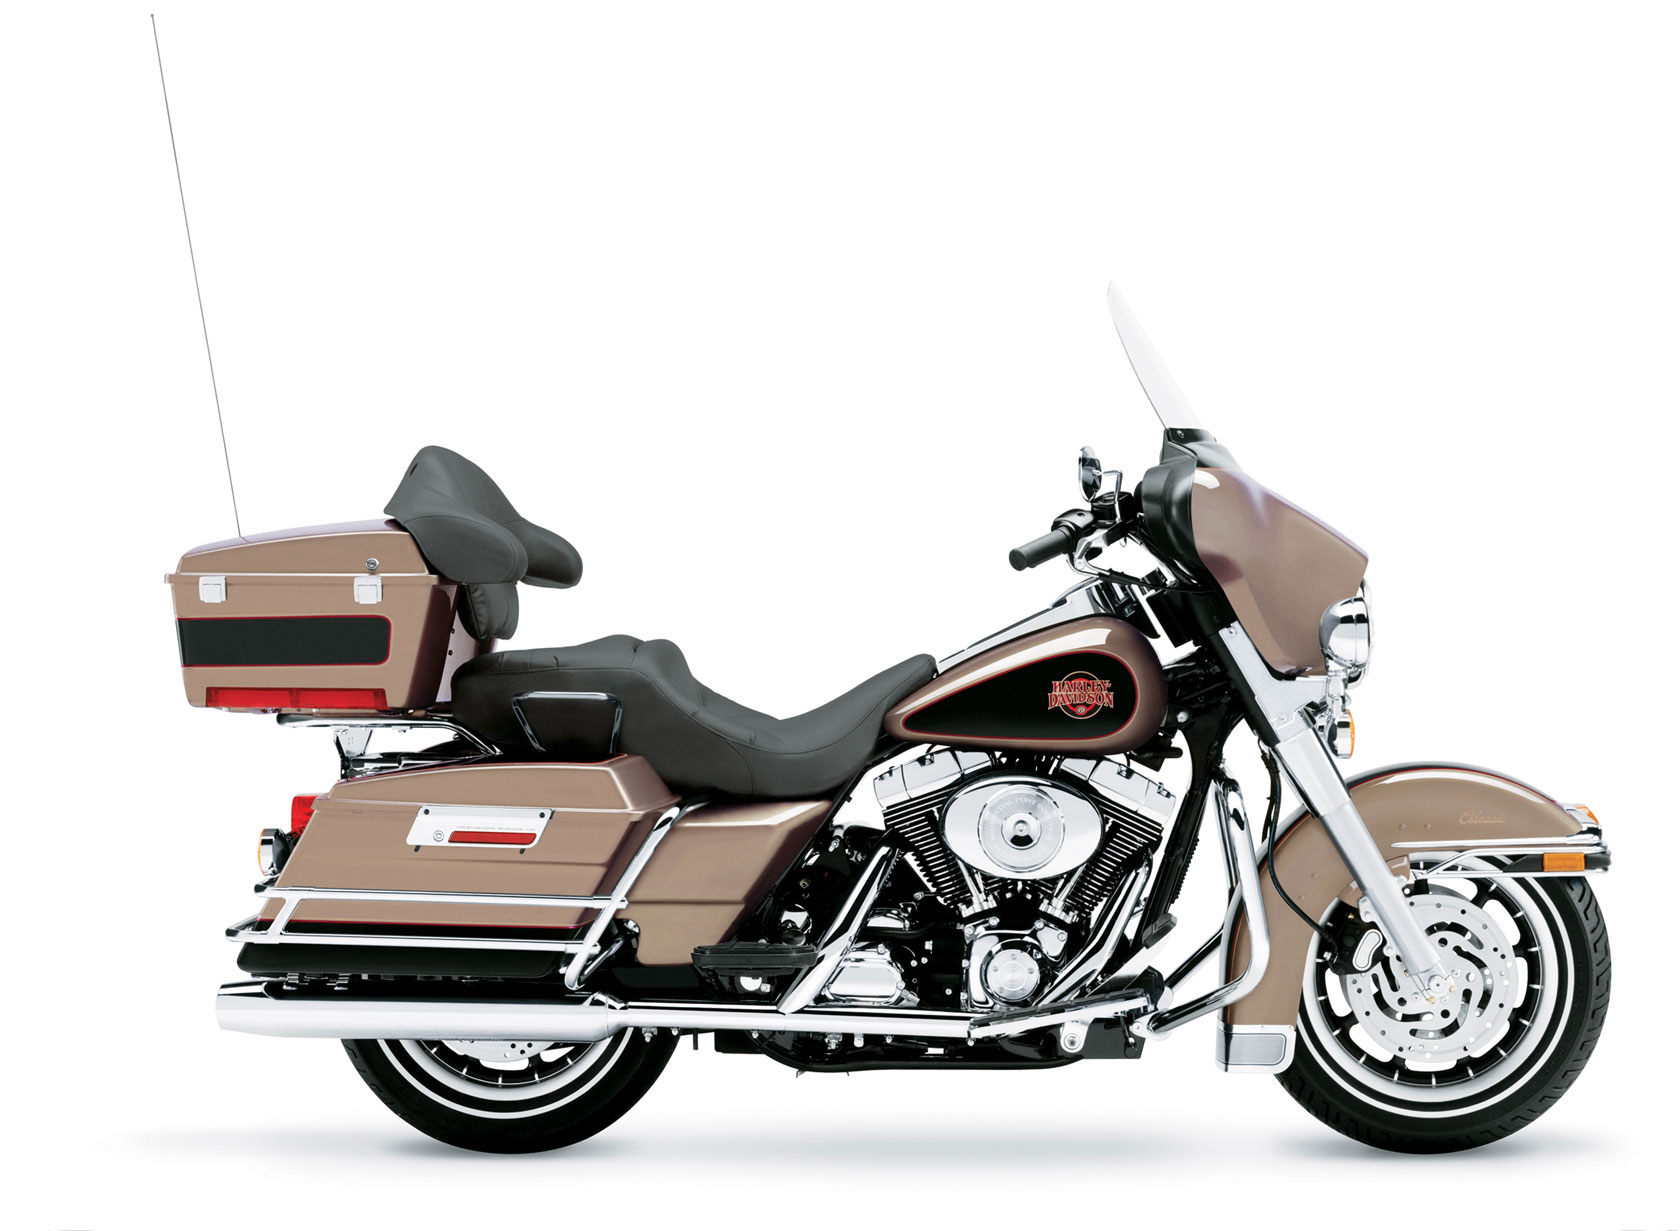 2004 harley davidson flhtc i electra glide classic. Black Bedroom Furniture Sets. Home Design Ideas